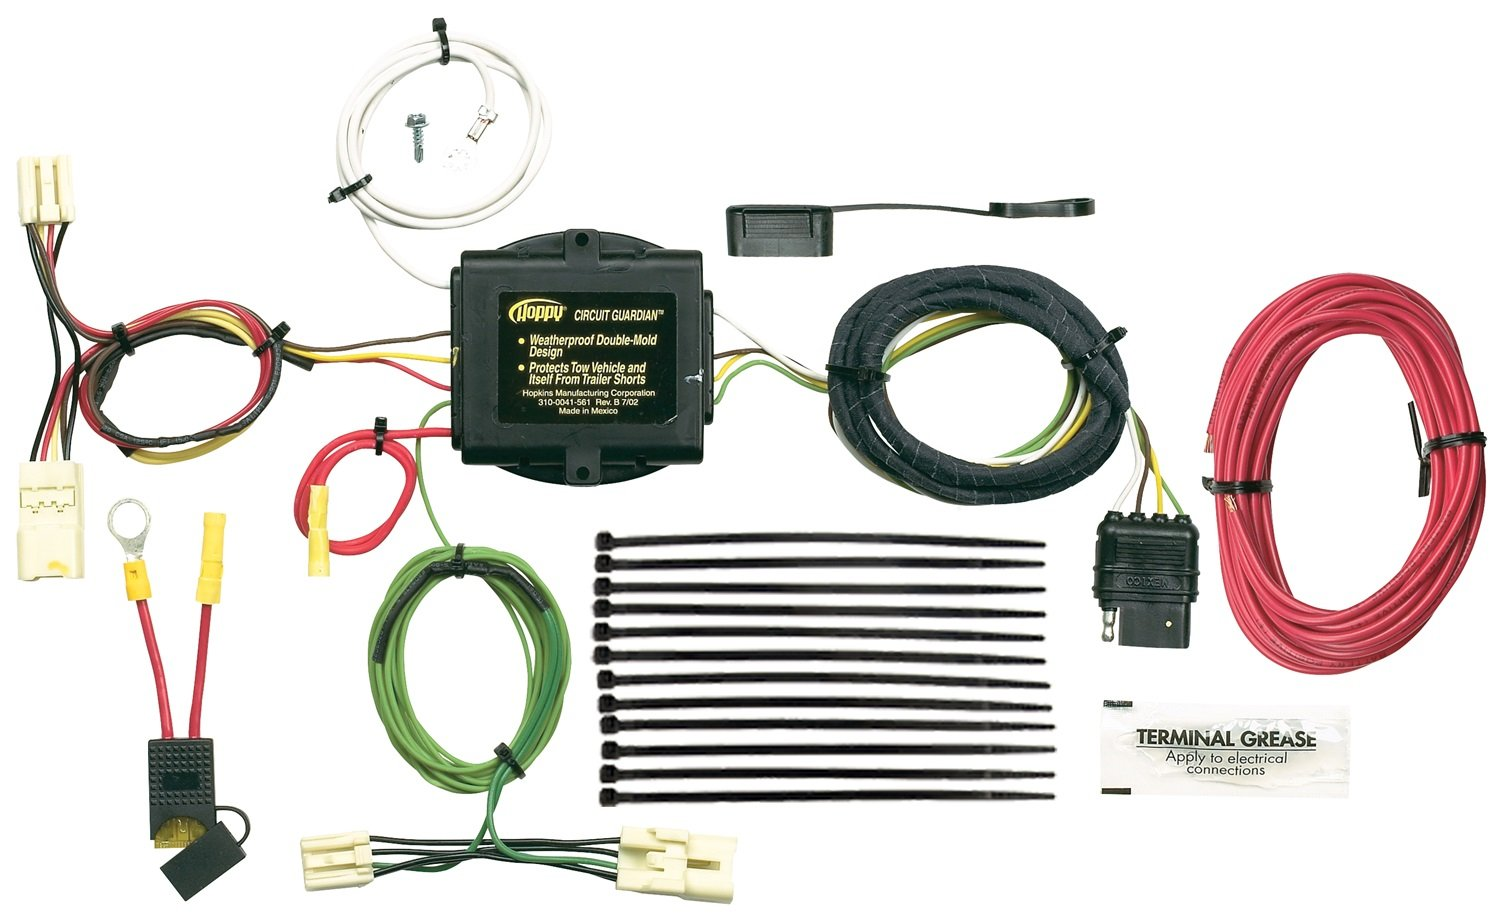 71xAqCdW7GL._SL1500_ amazon com hopkins 43445 vehicle to trailer wiring kit for toyota 4 Prong Trailer Wiring Diagram at mifinder.co